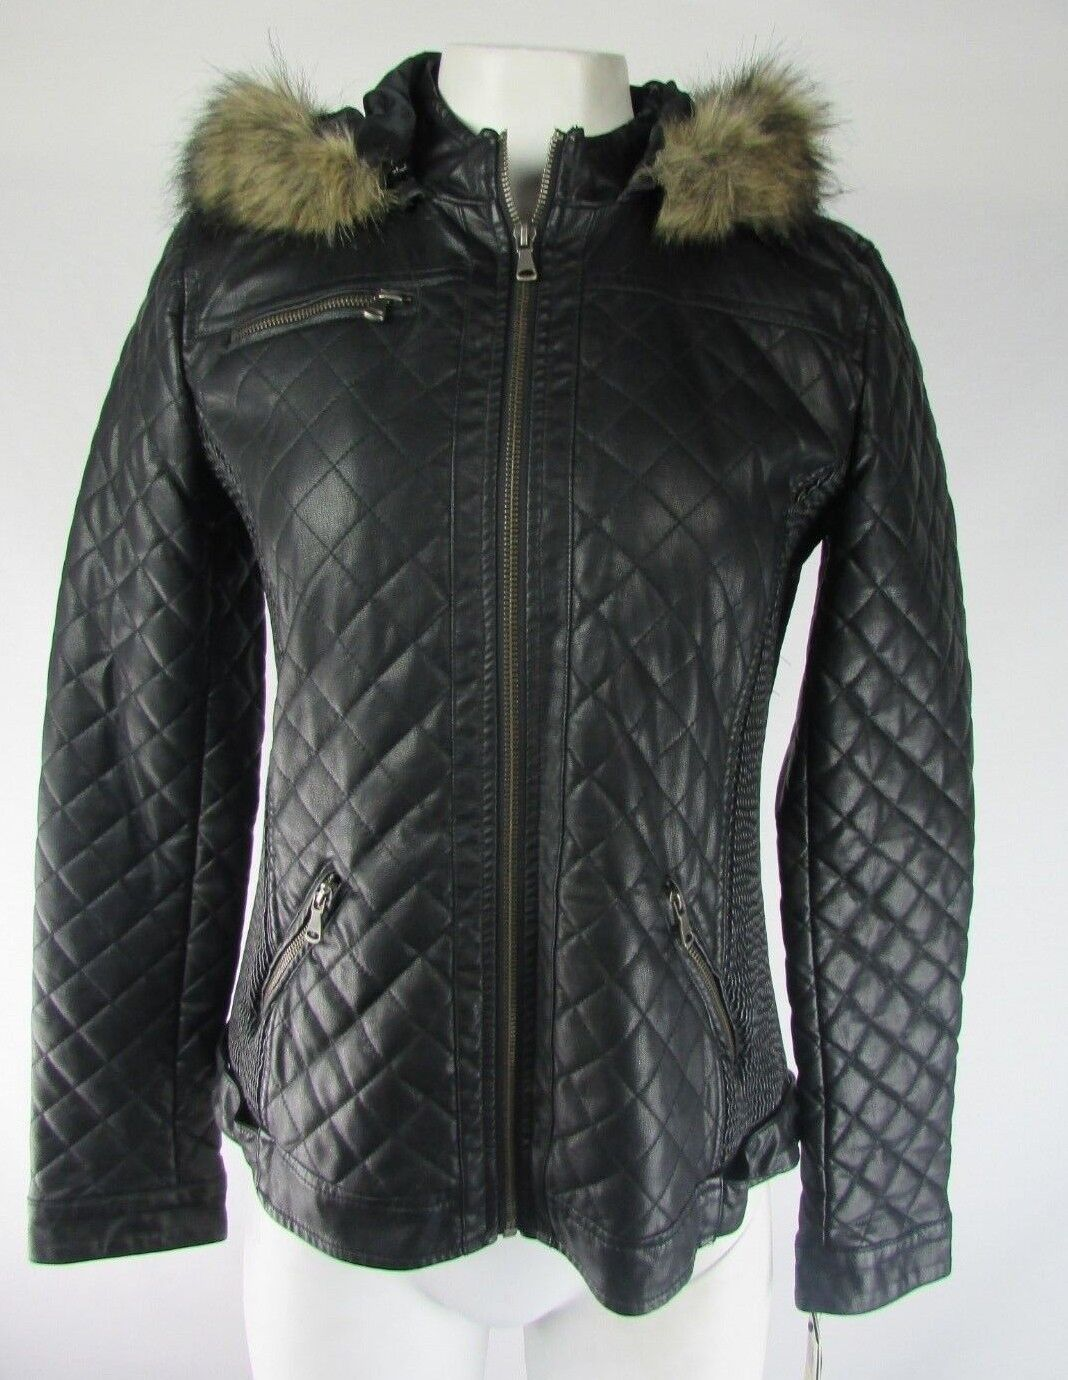 Bar III Women's Black Faux-Fur-Trimmed Quilted Faux-Leather Hood Jacket Size M